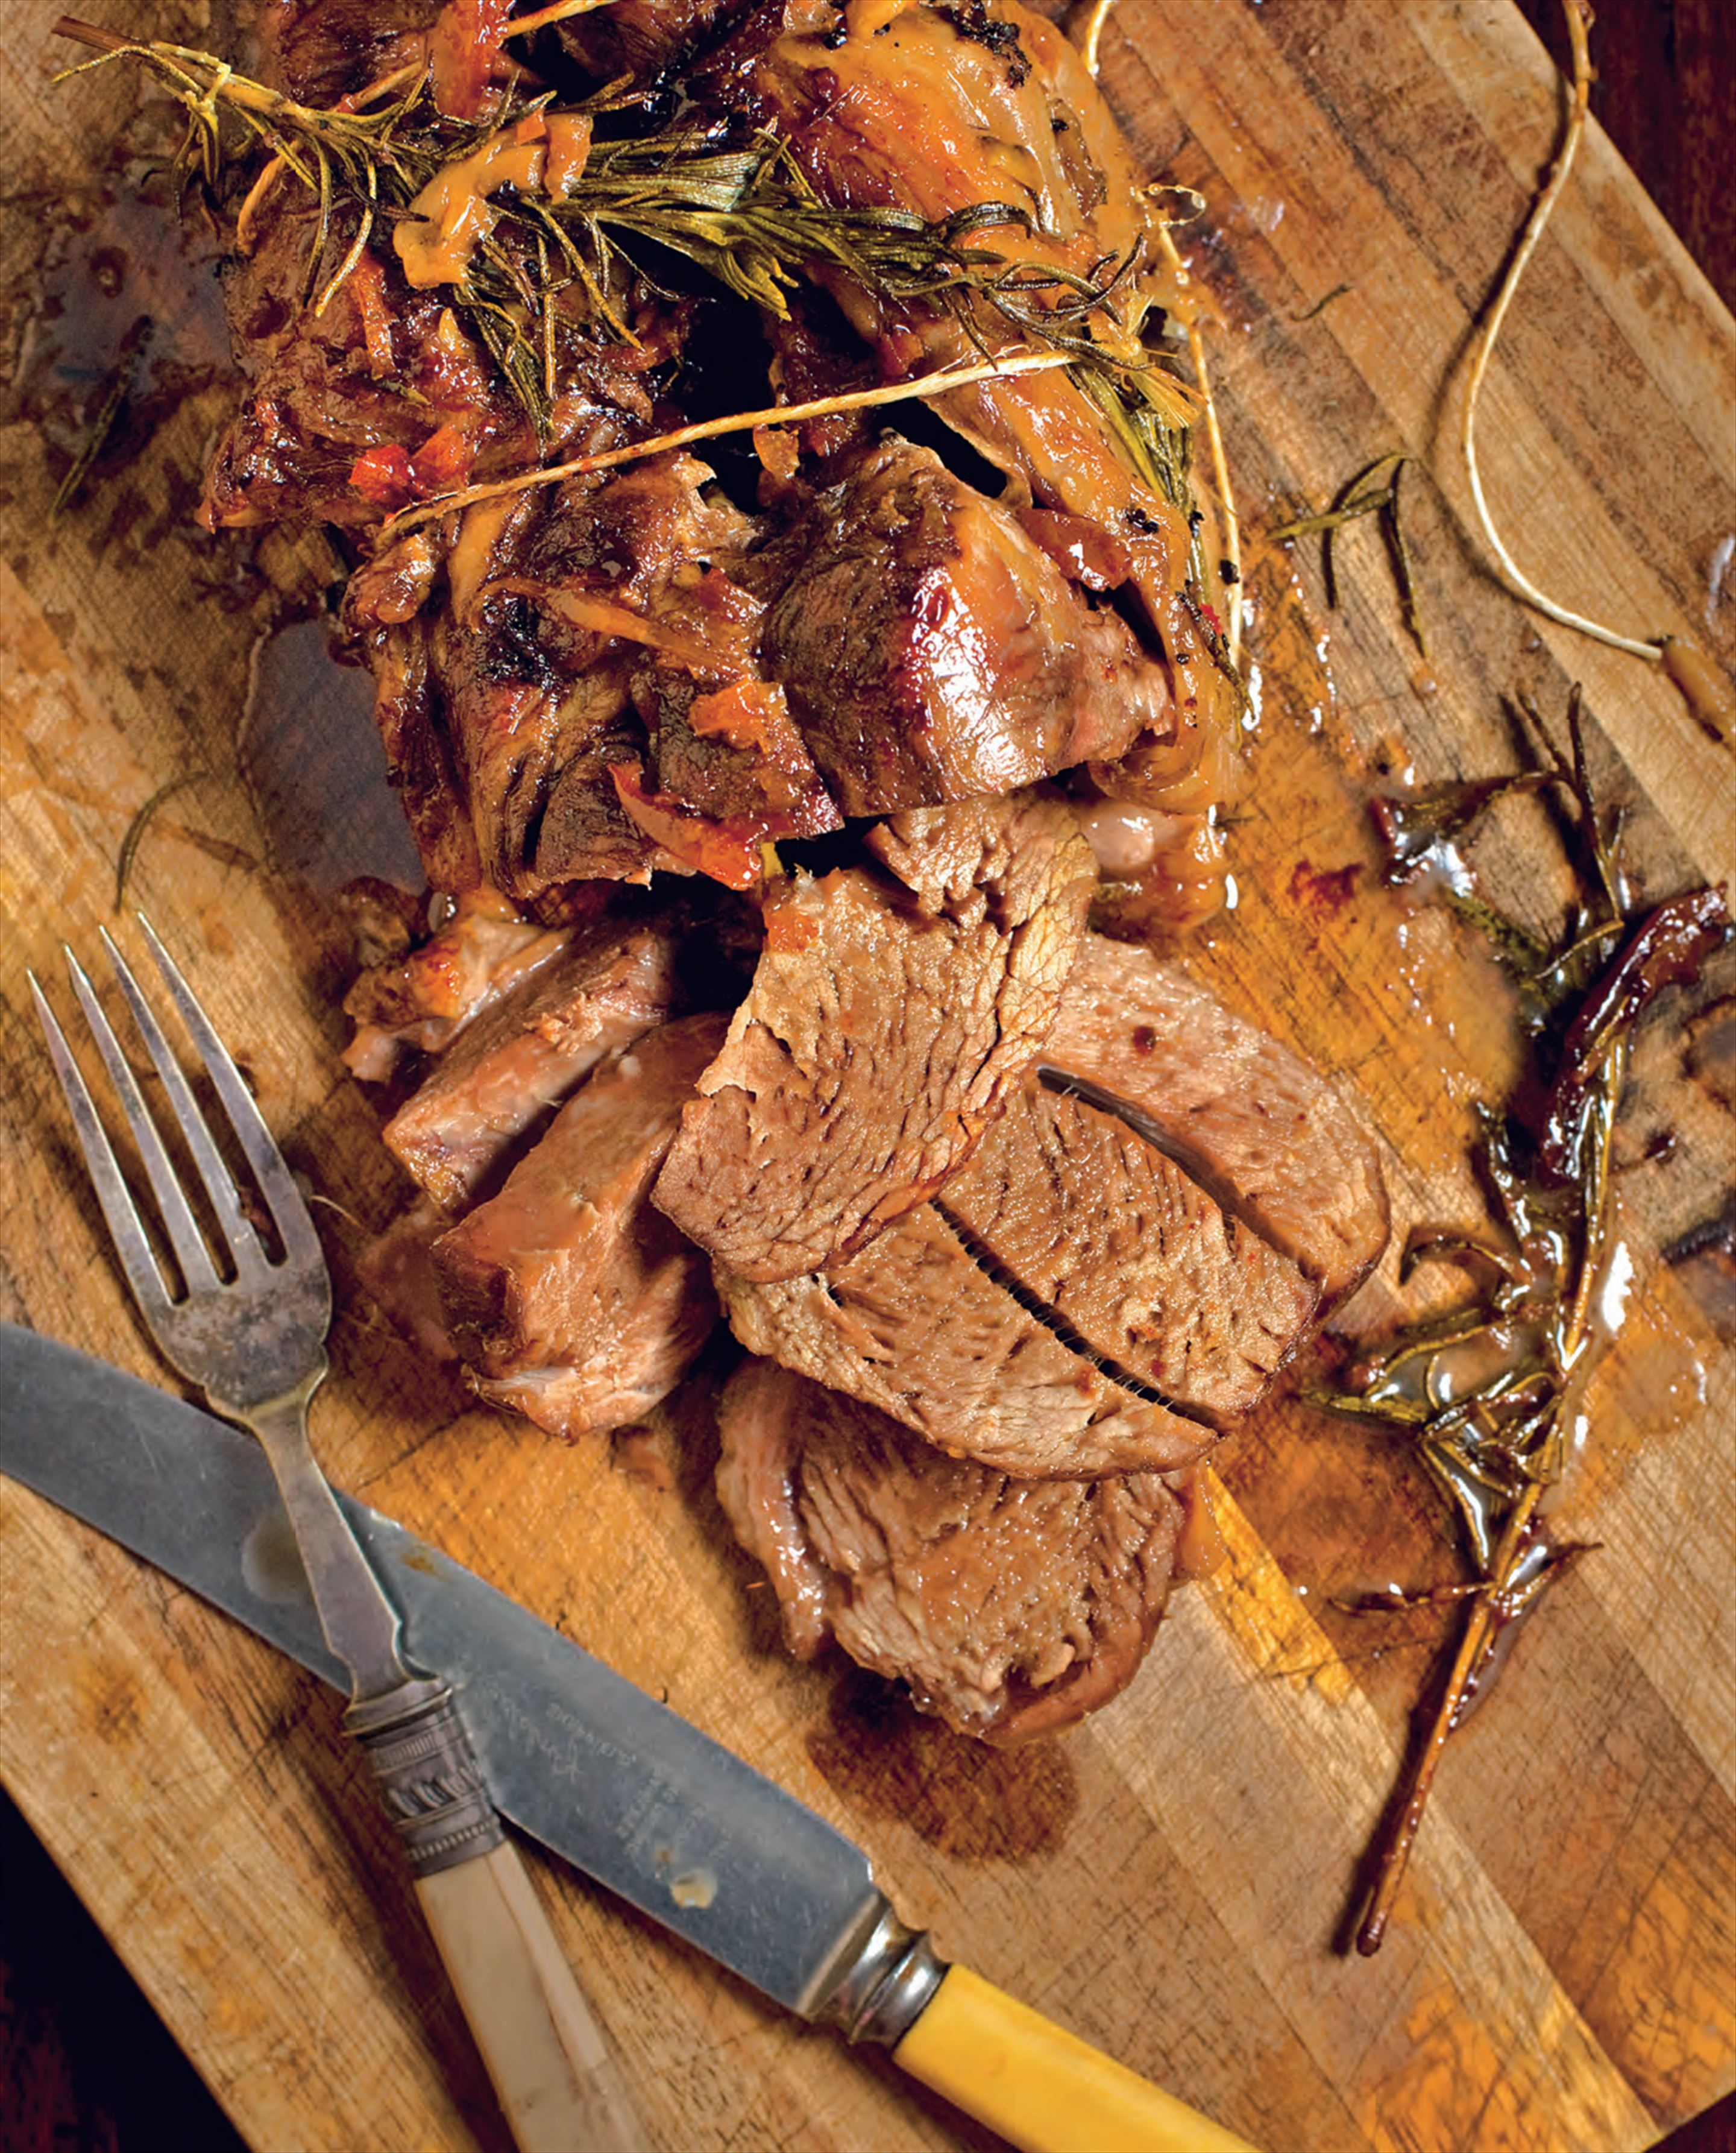 Slow-roast lamb shoulder with rosemary and preserved lemon